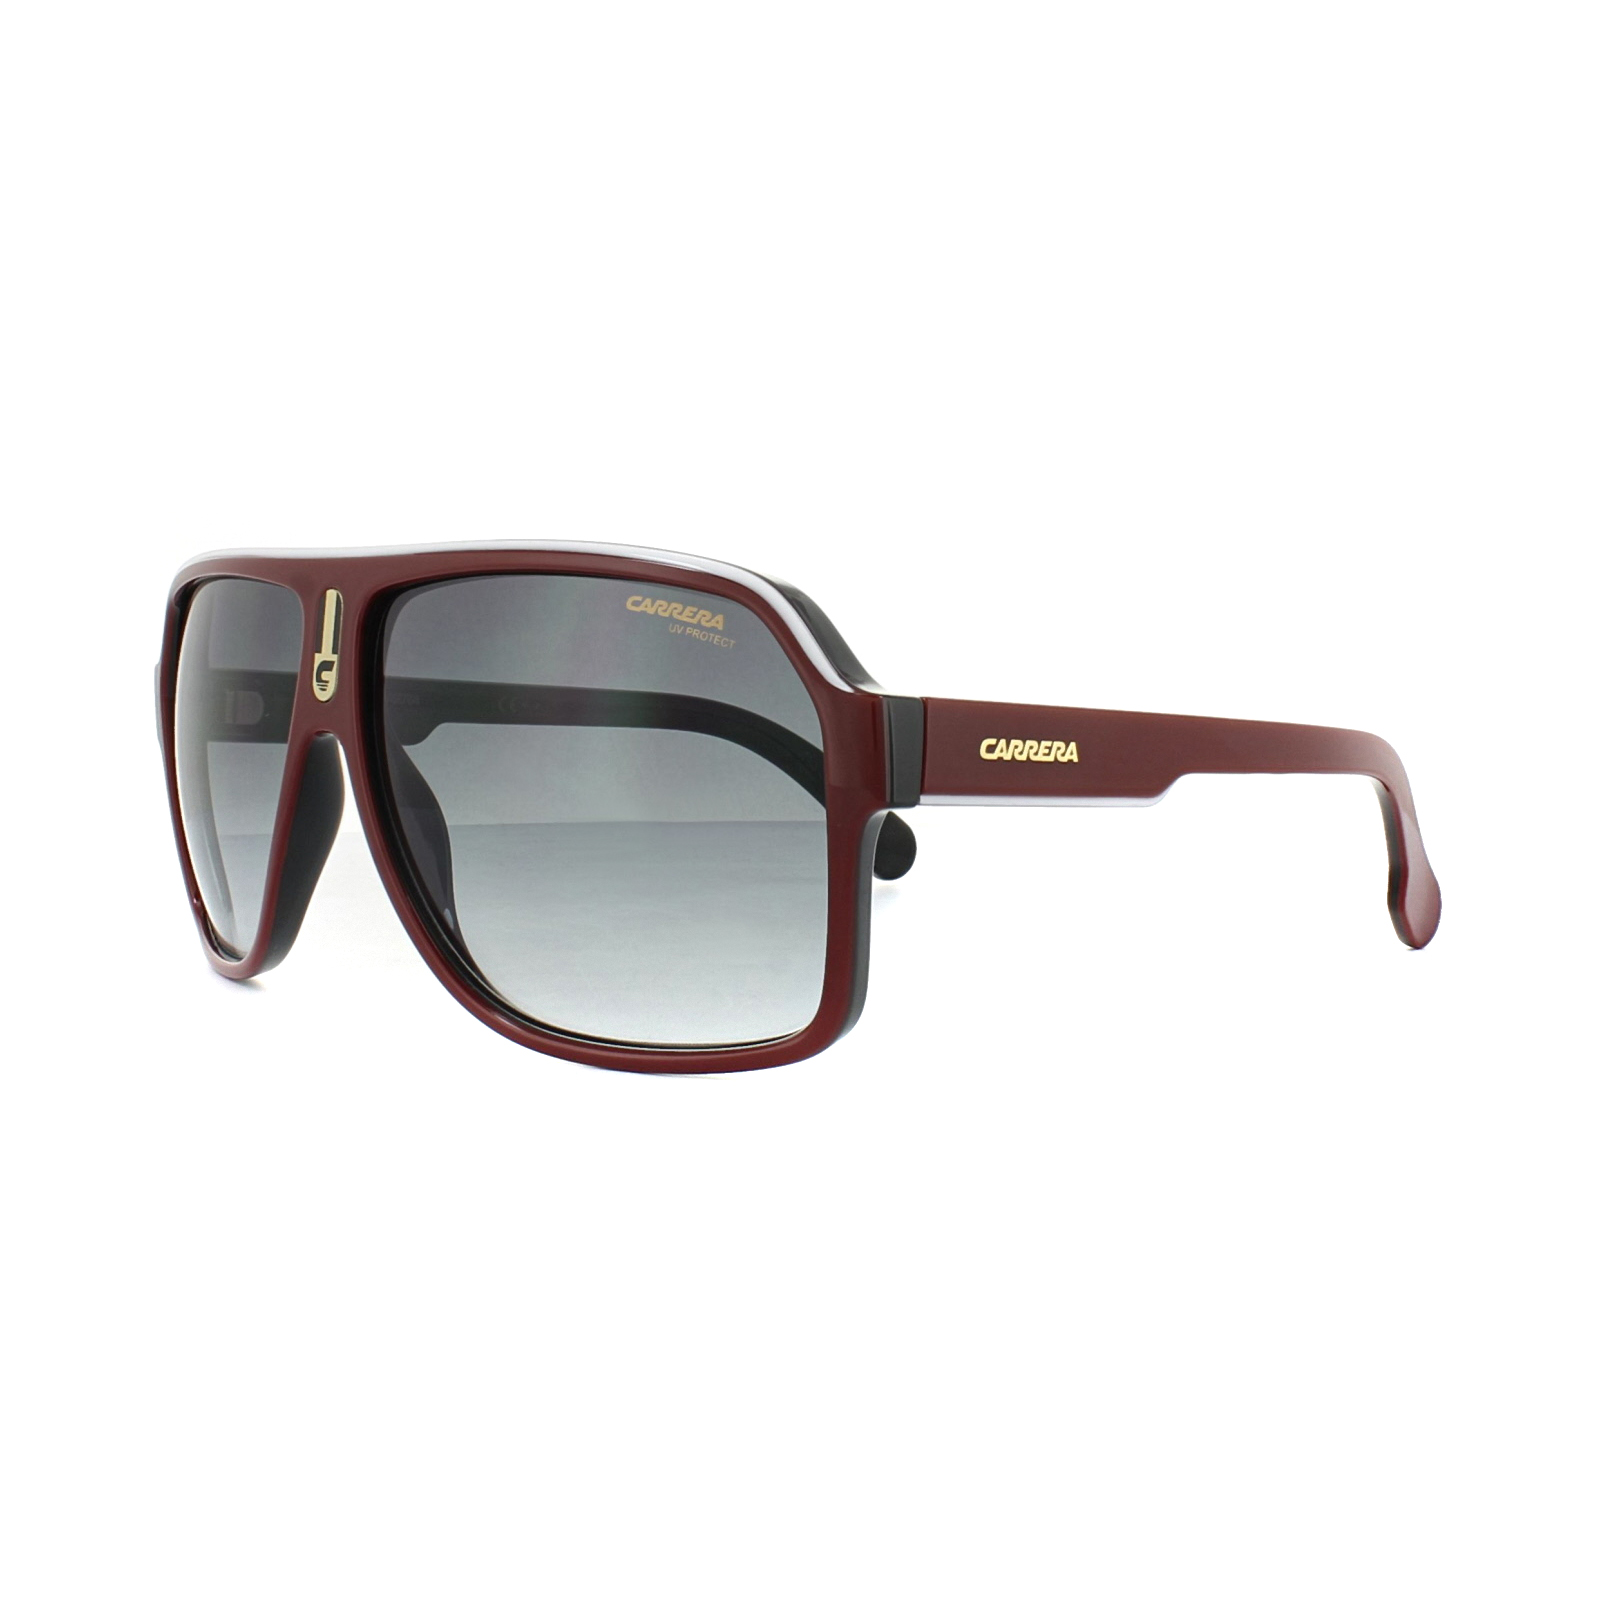 Red Grey About 0a4 Gradient 1001s Black Details Carrera Dark 9o Sunglasses BoEQCxrWde